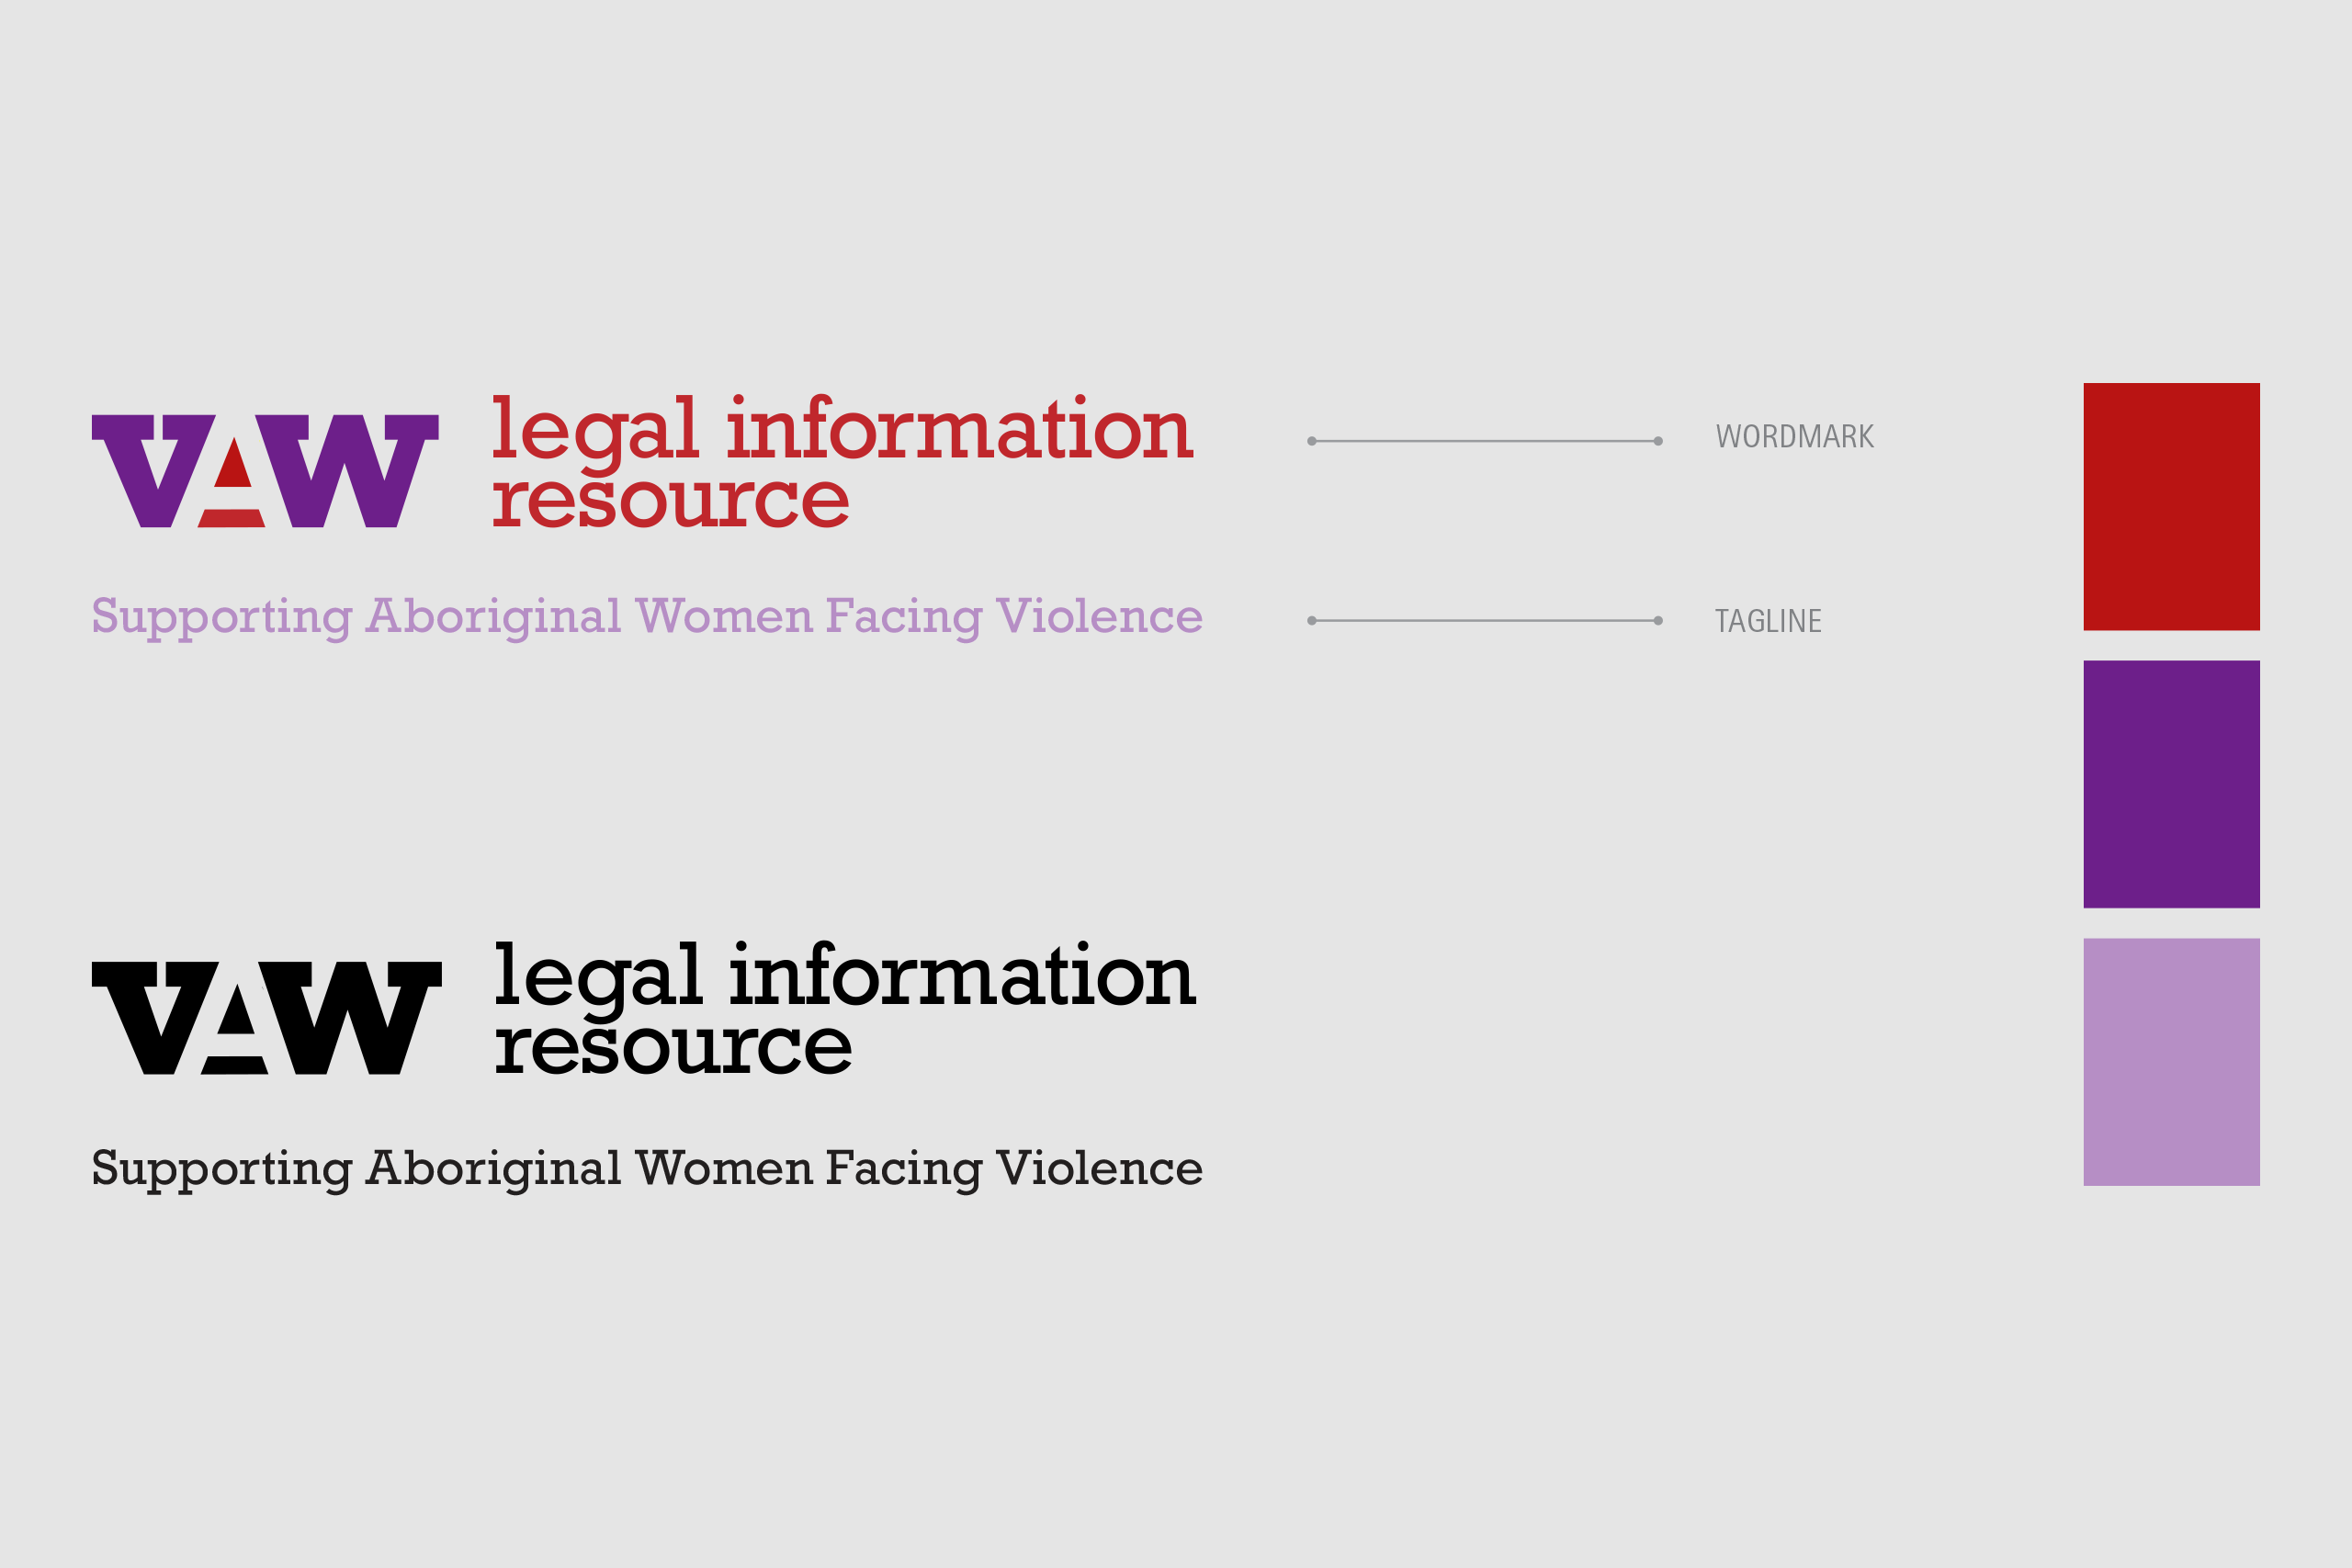 Violence Against Women (VAW) Legal Information Resource